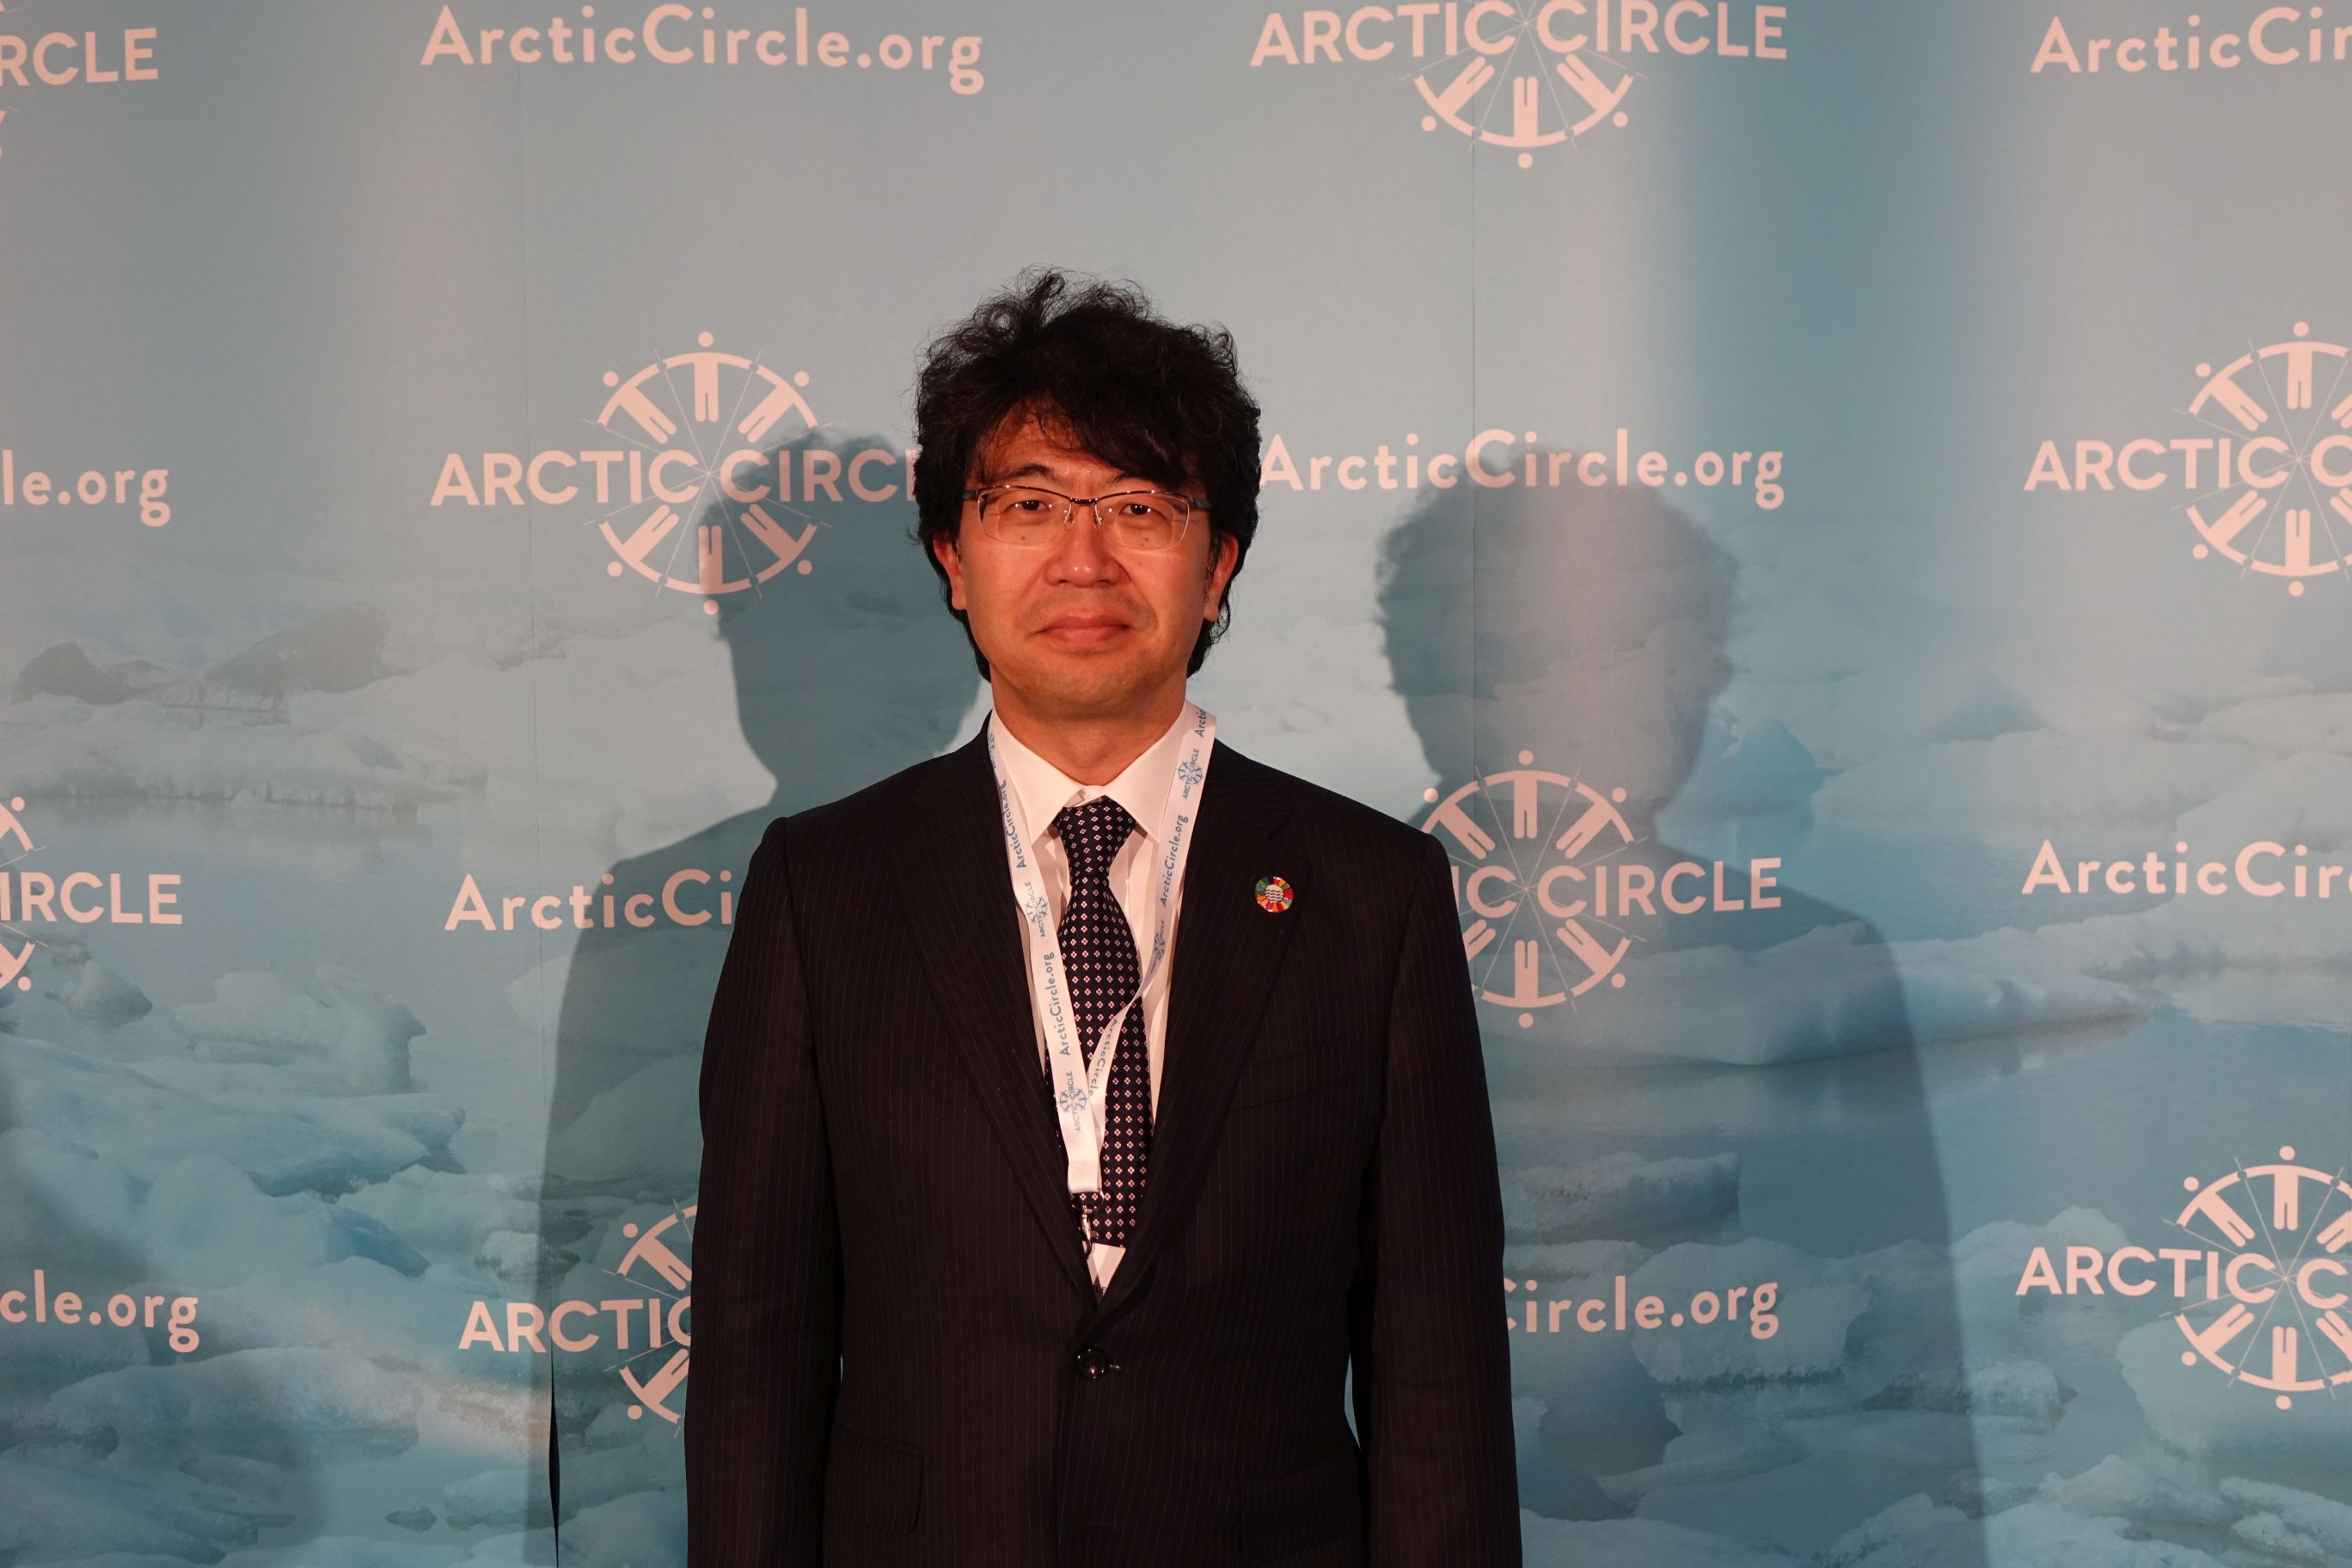 OPRI President Atsushi Sunami Named to Arctic Circle Advisory Board